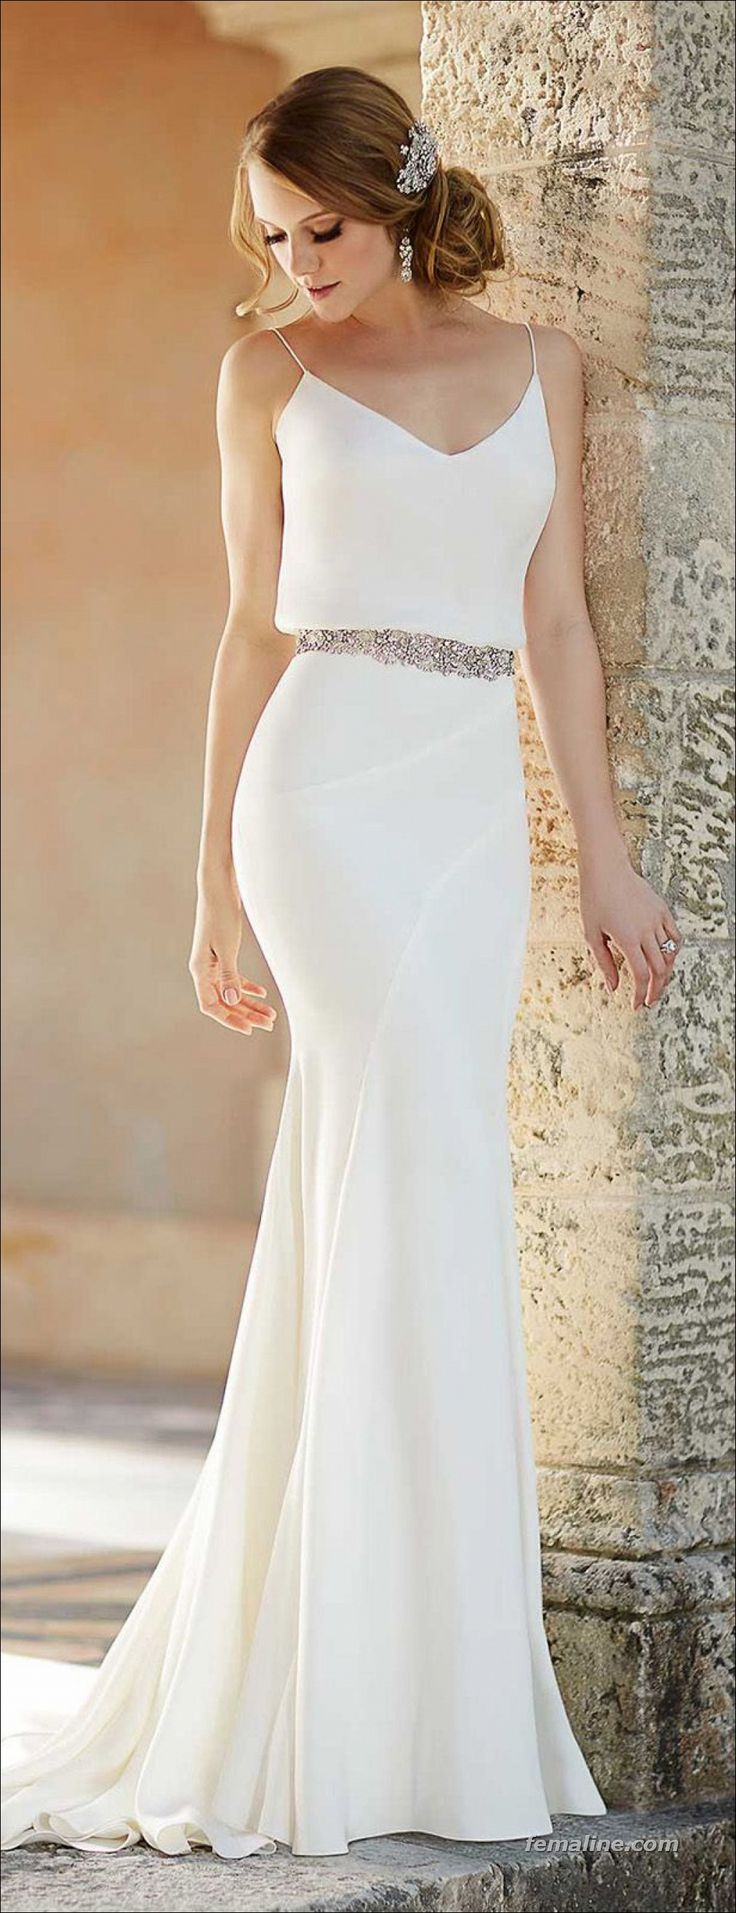 Simple Wedding Dresses 2017 Trends and Ideas